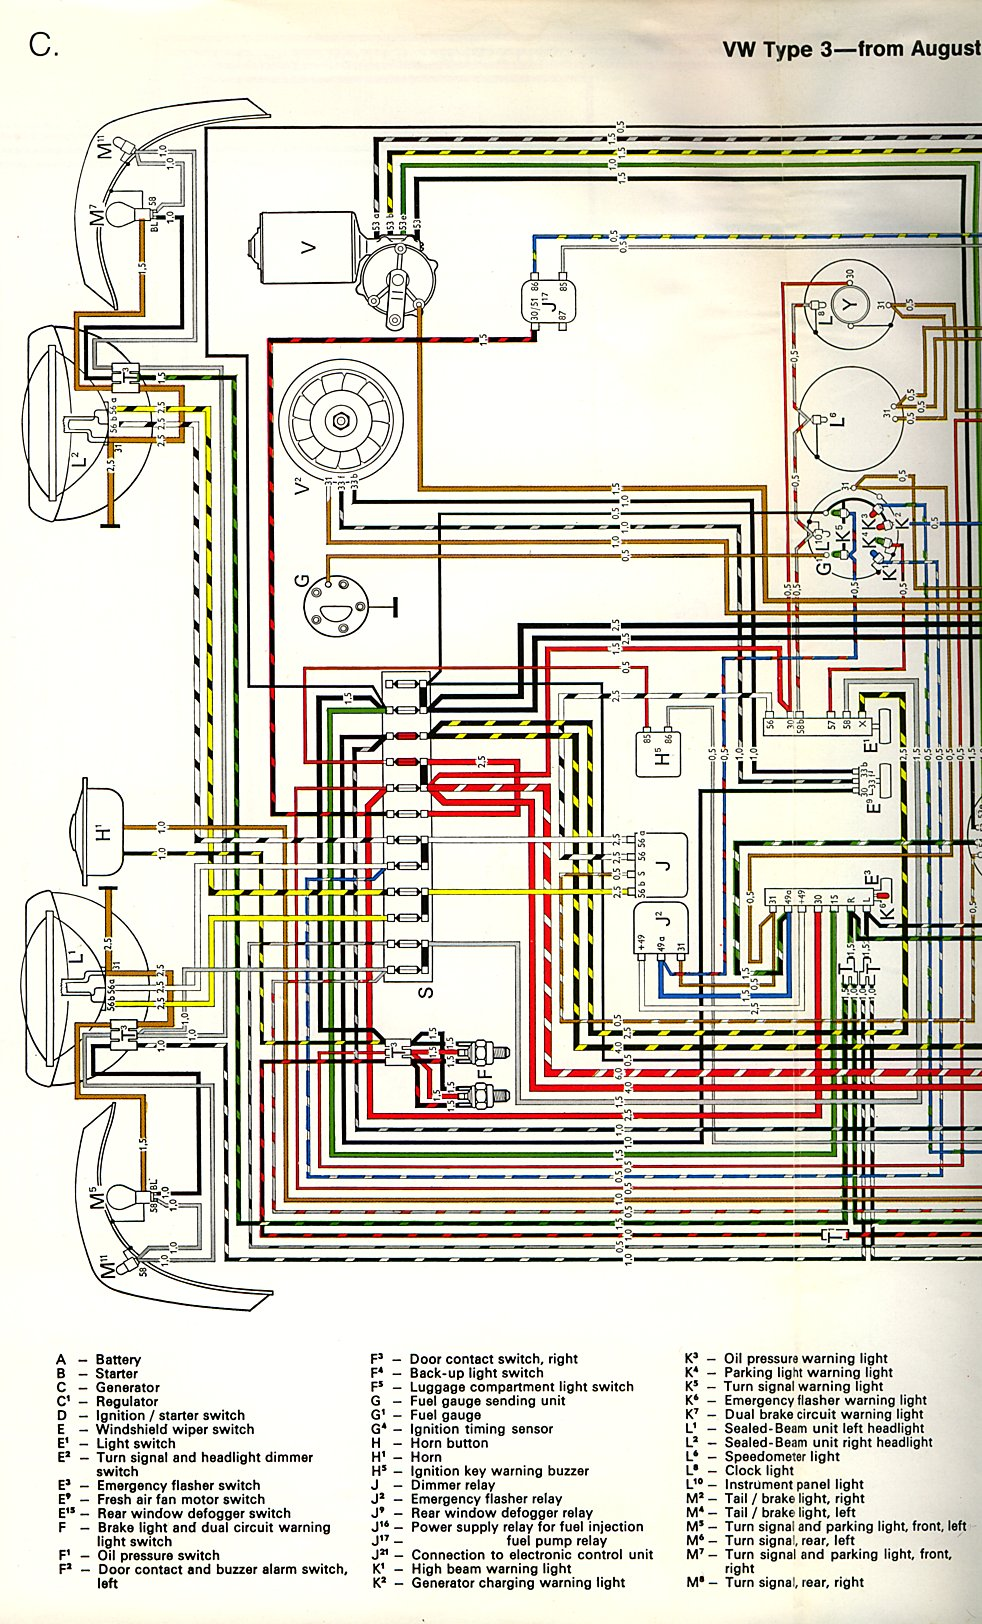 thesamba com type 3 wiring diagrams rh thesamba com 1969 VW Bus Wiring  Harness VW Wiring